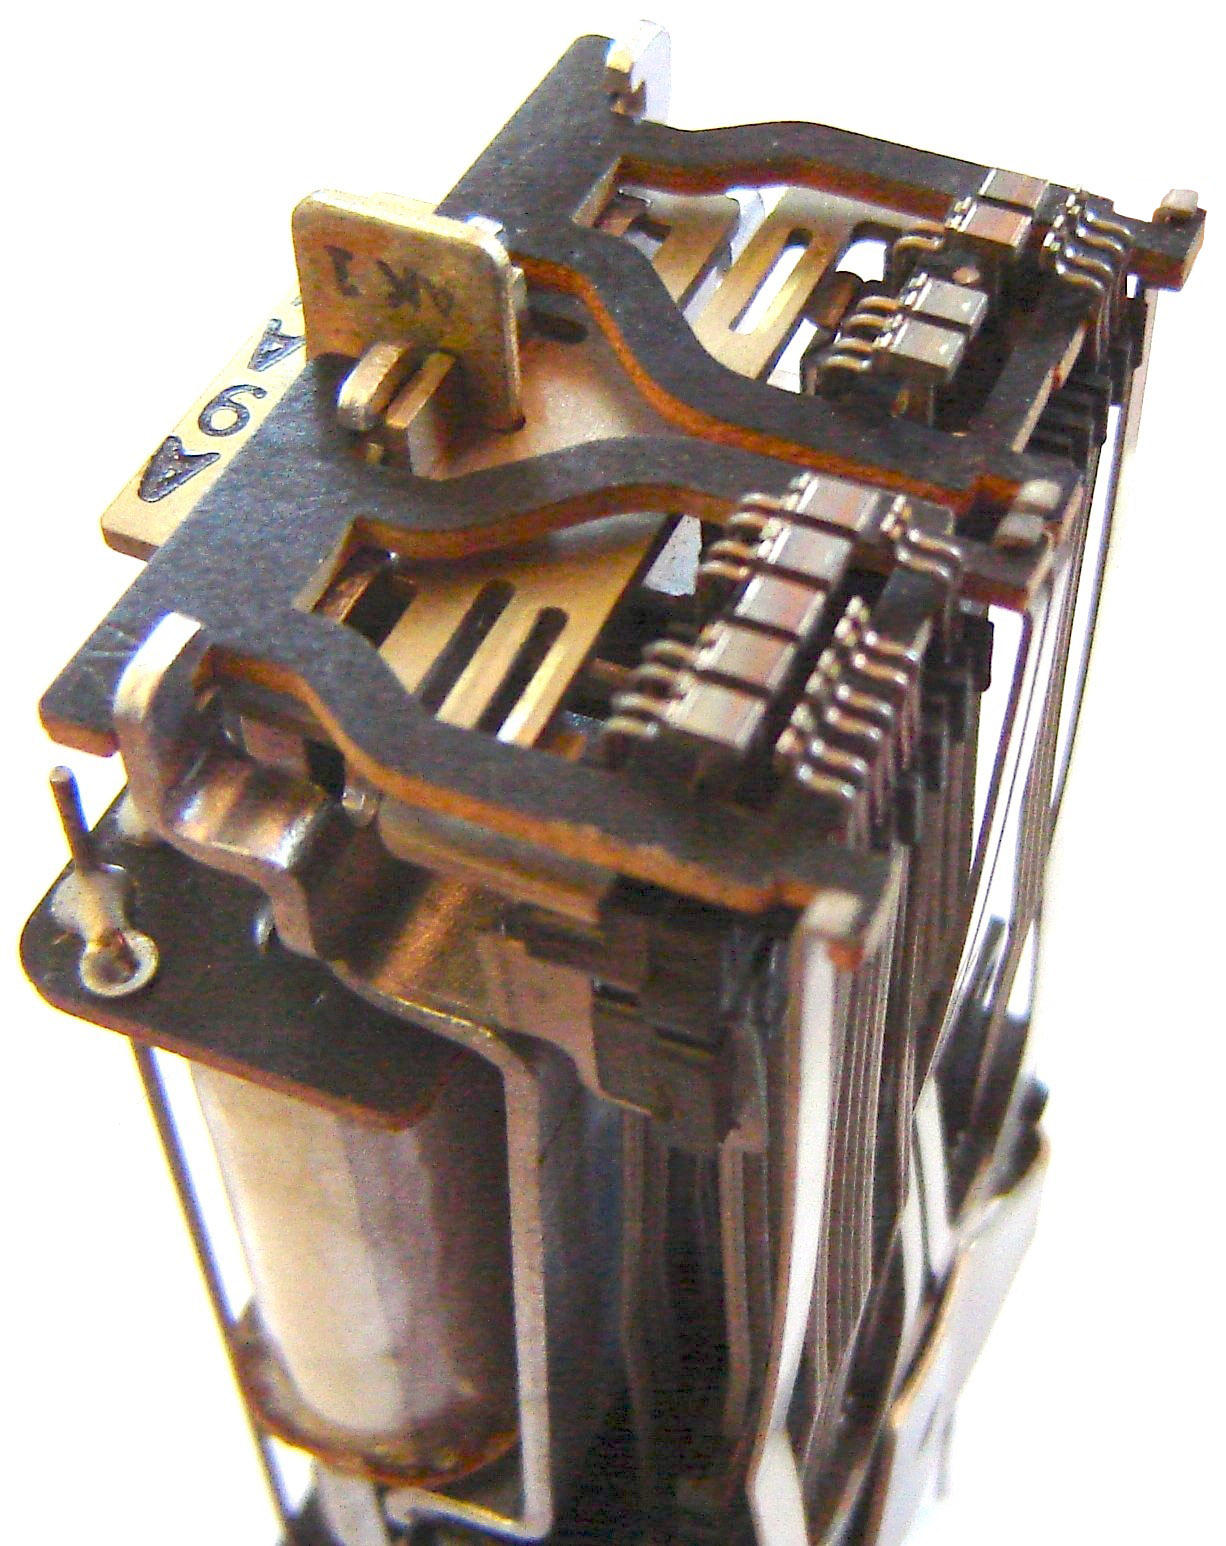 Wire Spring Relay Wikipedia That Can Be Used For Getting The From Switch To